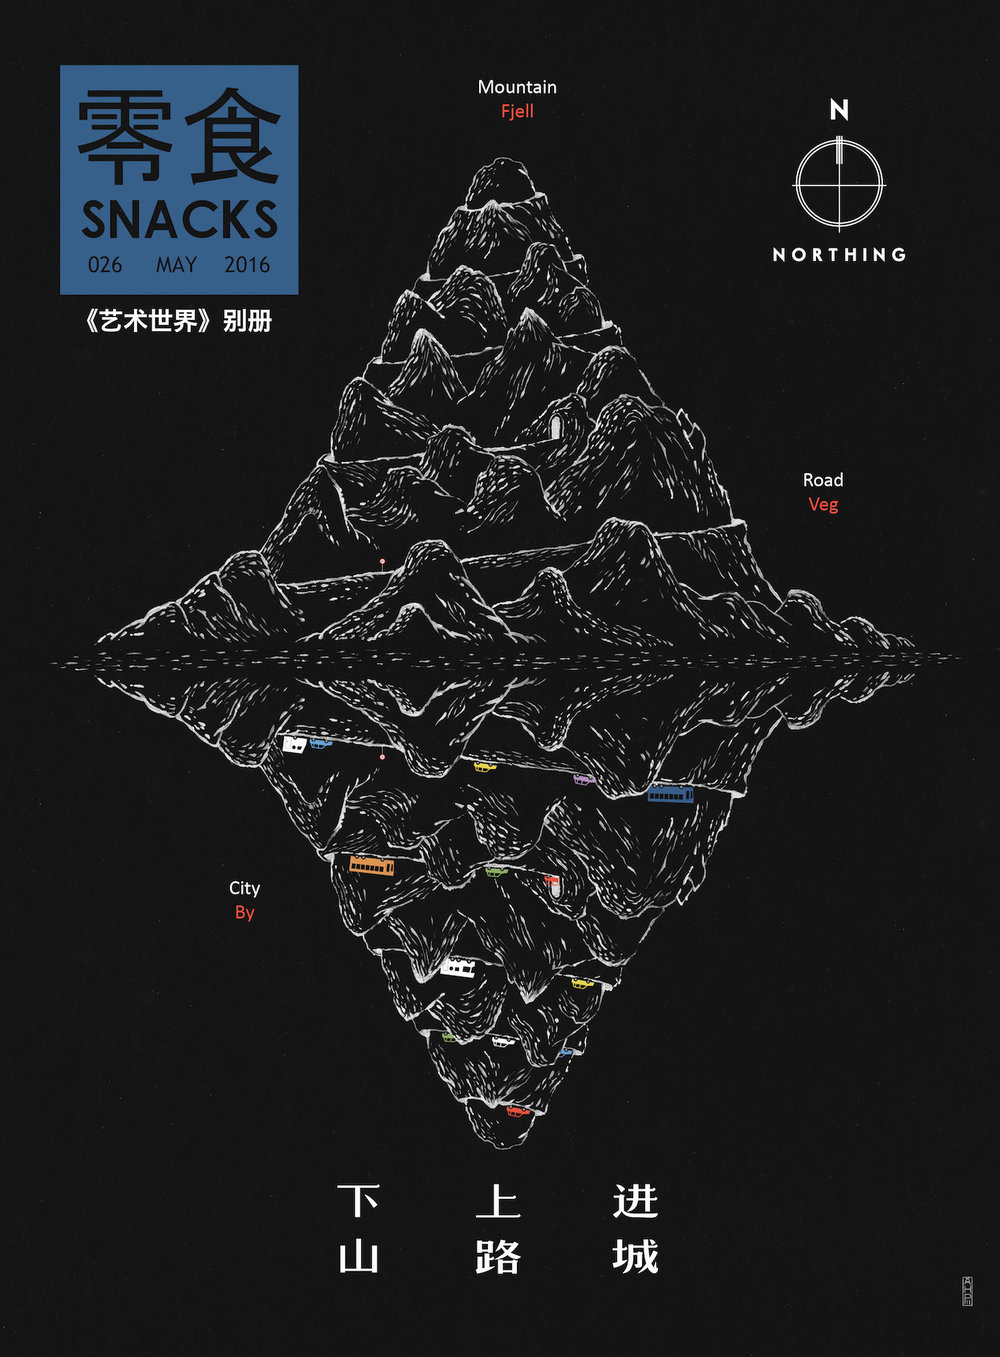 Snacks - Snack is the supplement of Art World - the biggest and oldest art magazine in China It comes out four times a year with a more alternativ and liberated style. Each number invites one artist or designer to edit and design the whole magazine. Me and Yilei took the job to plan, edit and design the issue No. 26. It was the first time we work together on a project under the name of Northing. All artists featured in this magazine are somehow connected to Bergen. The making of this issue was also supported by Bergen Kommune.